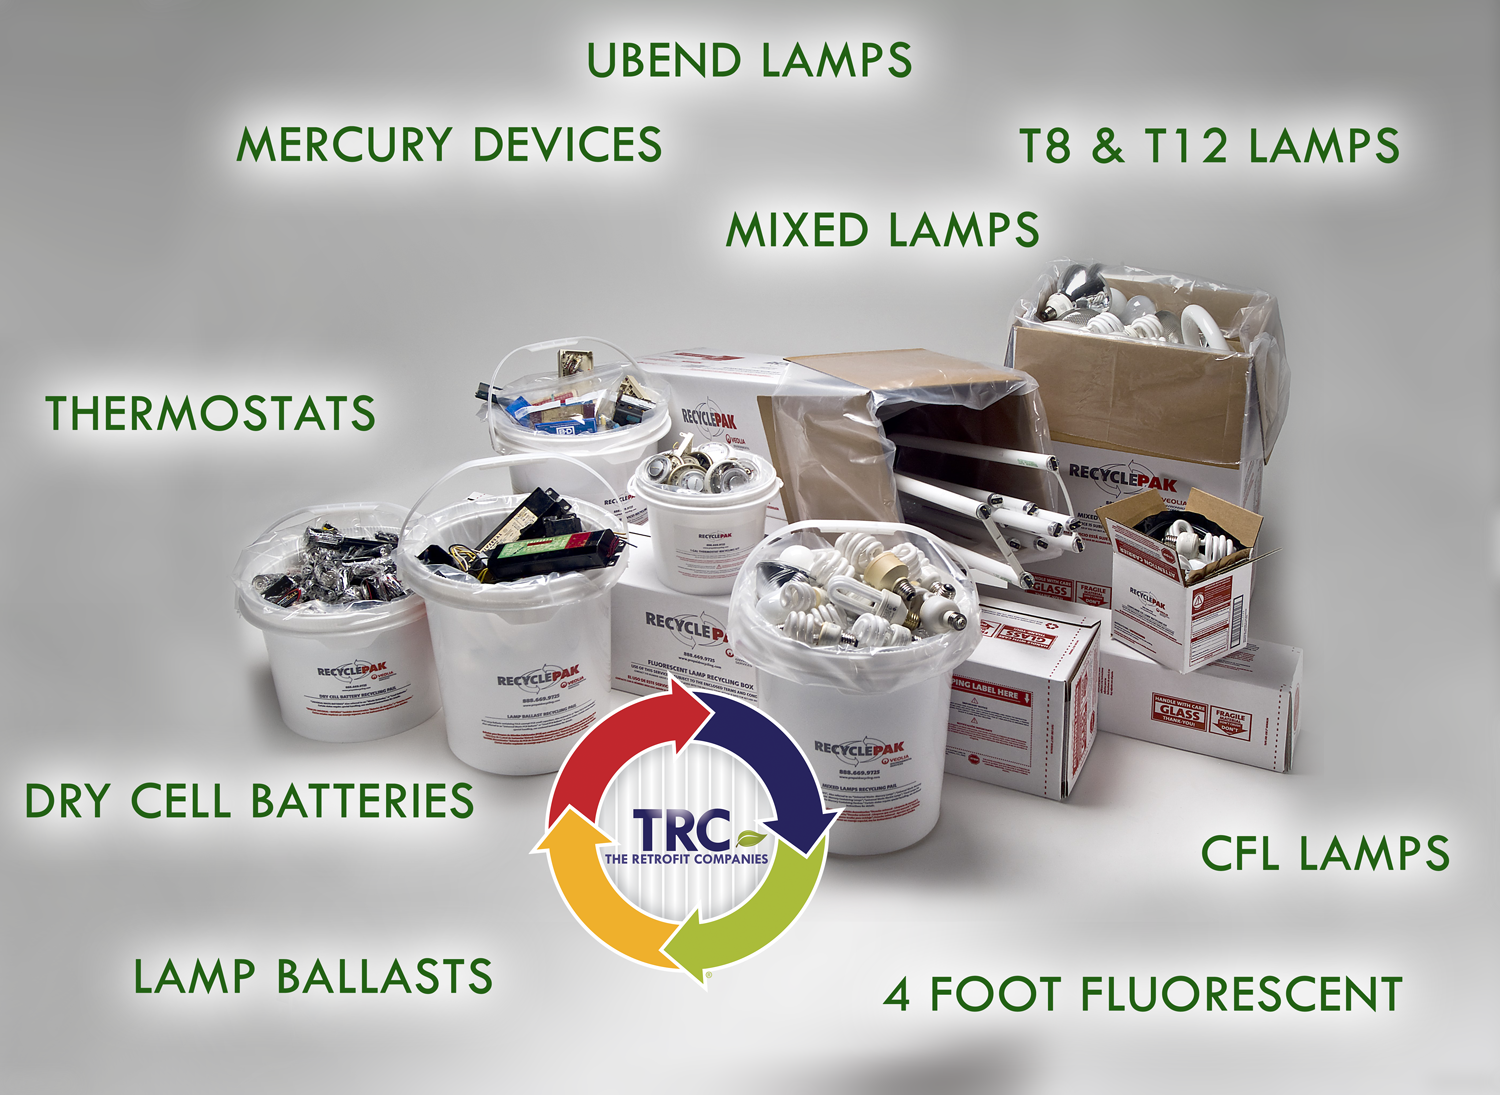 What Needs To Be Known About Universal Waste Lamps